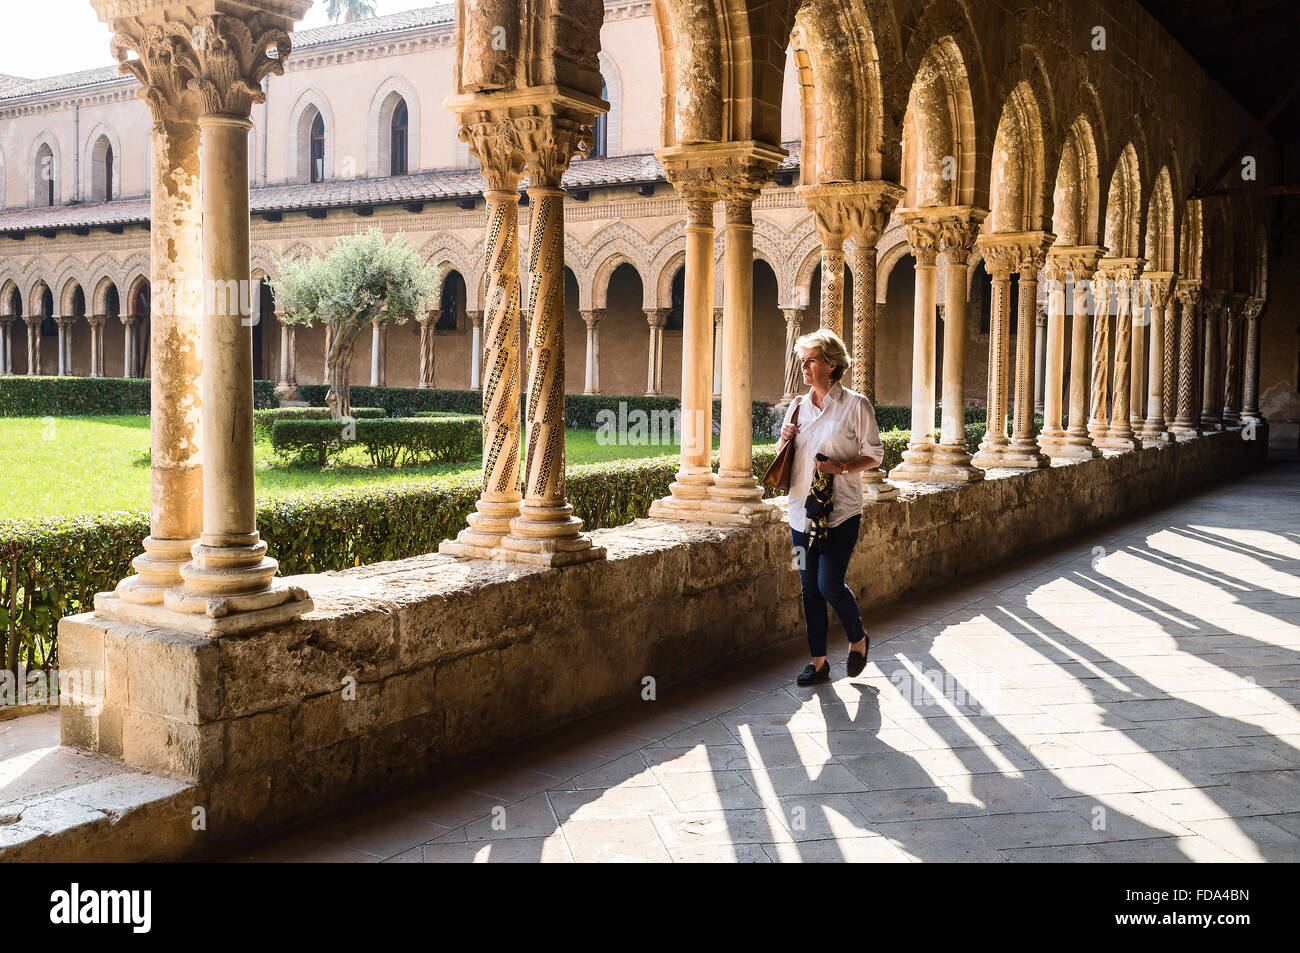 Woman walking in the cloisters of Monreale Cathedral  in the province of Palermo, Sicily - Stock Image